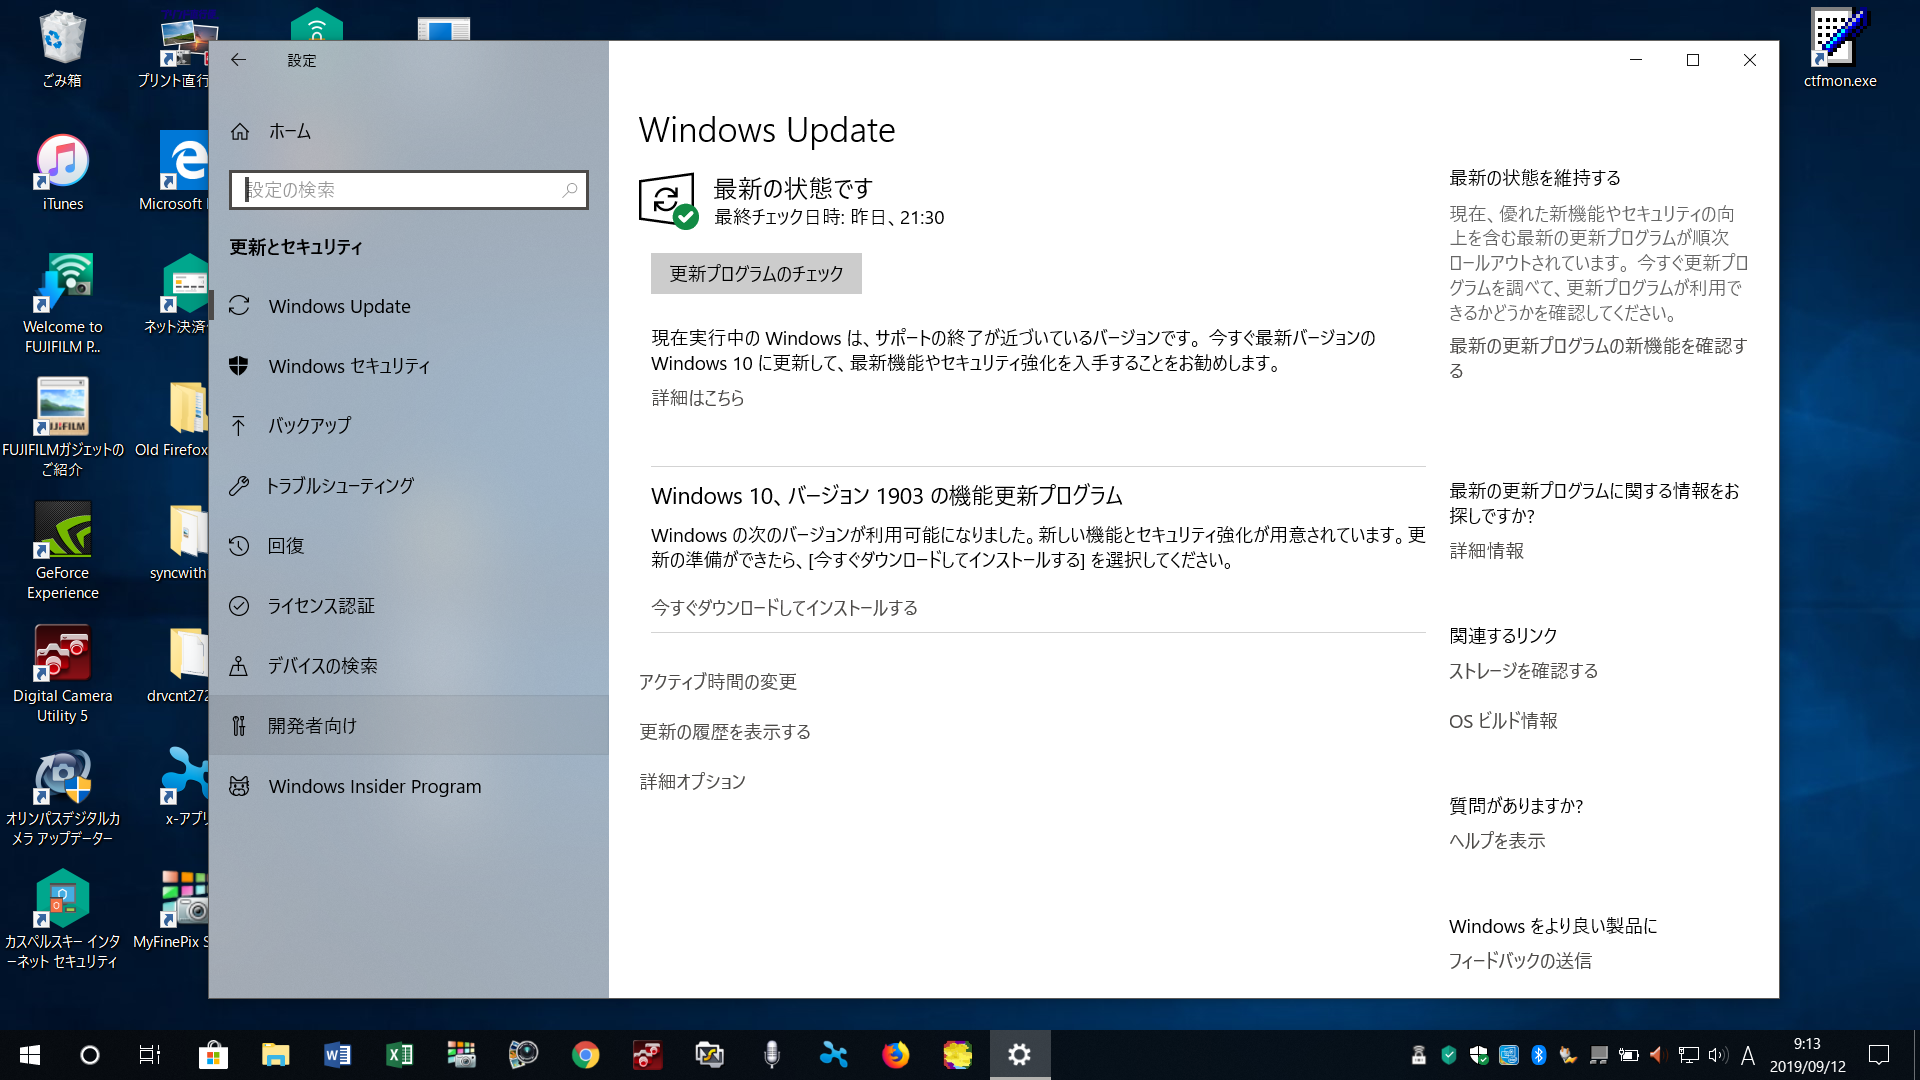 190912Windows10Ver1903.png